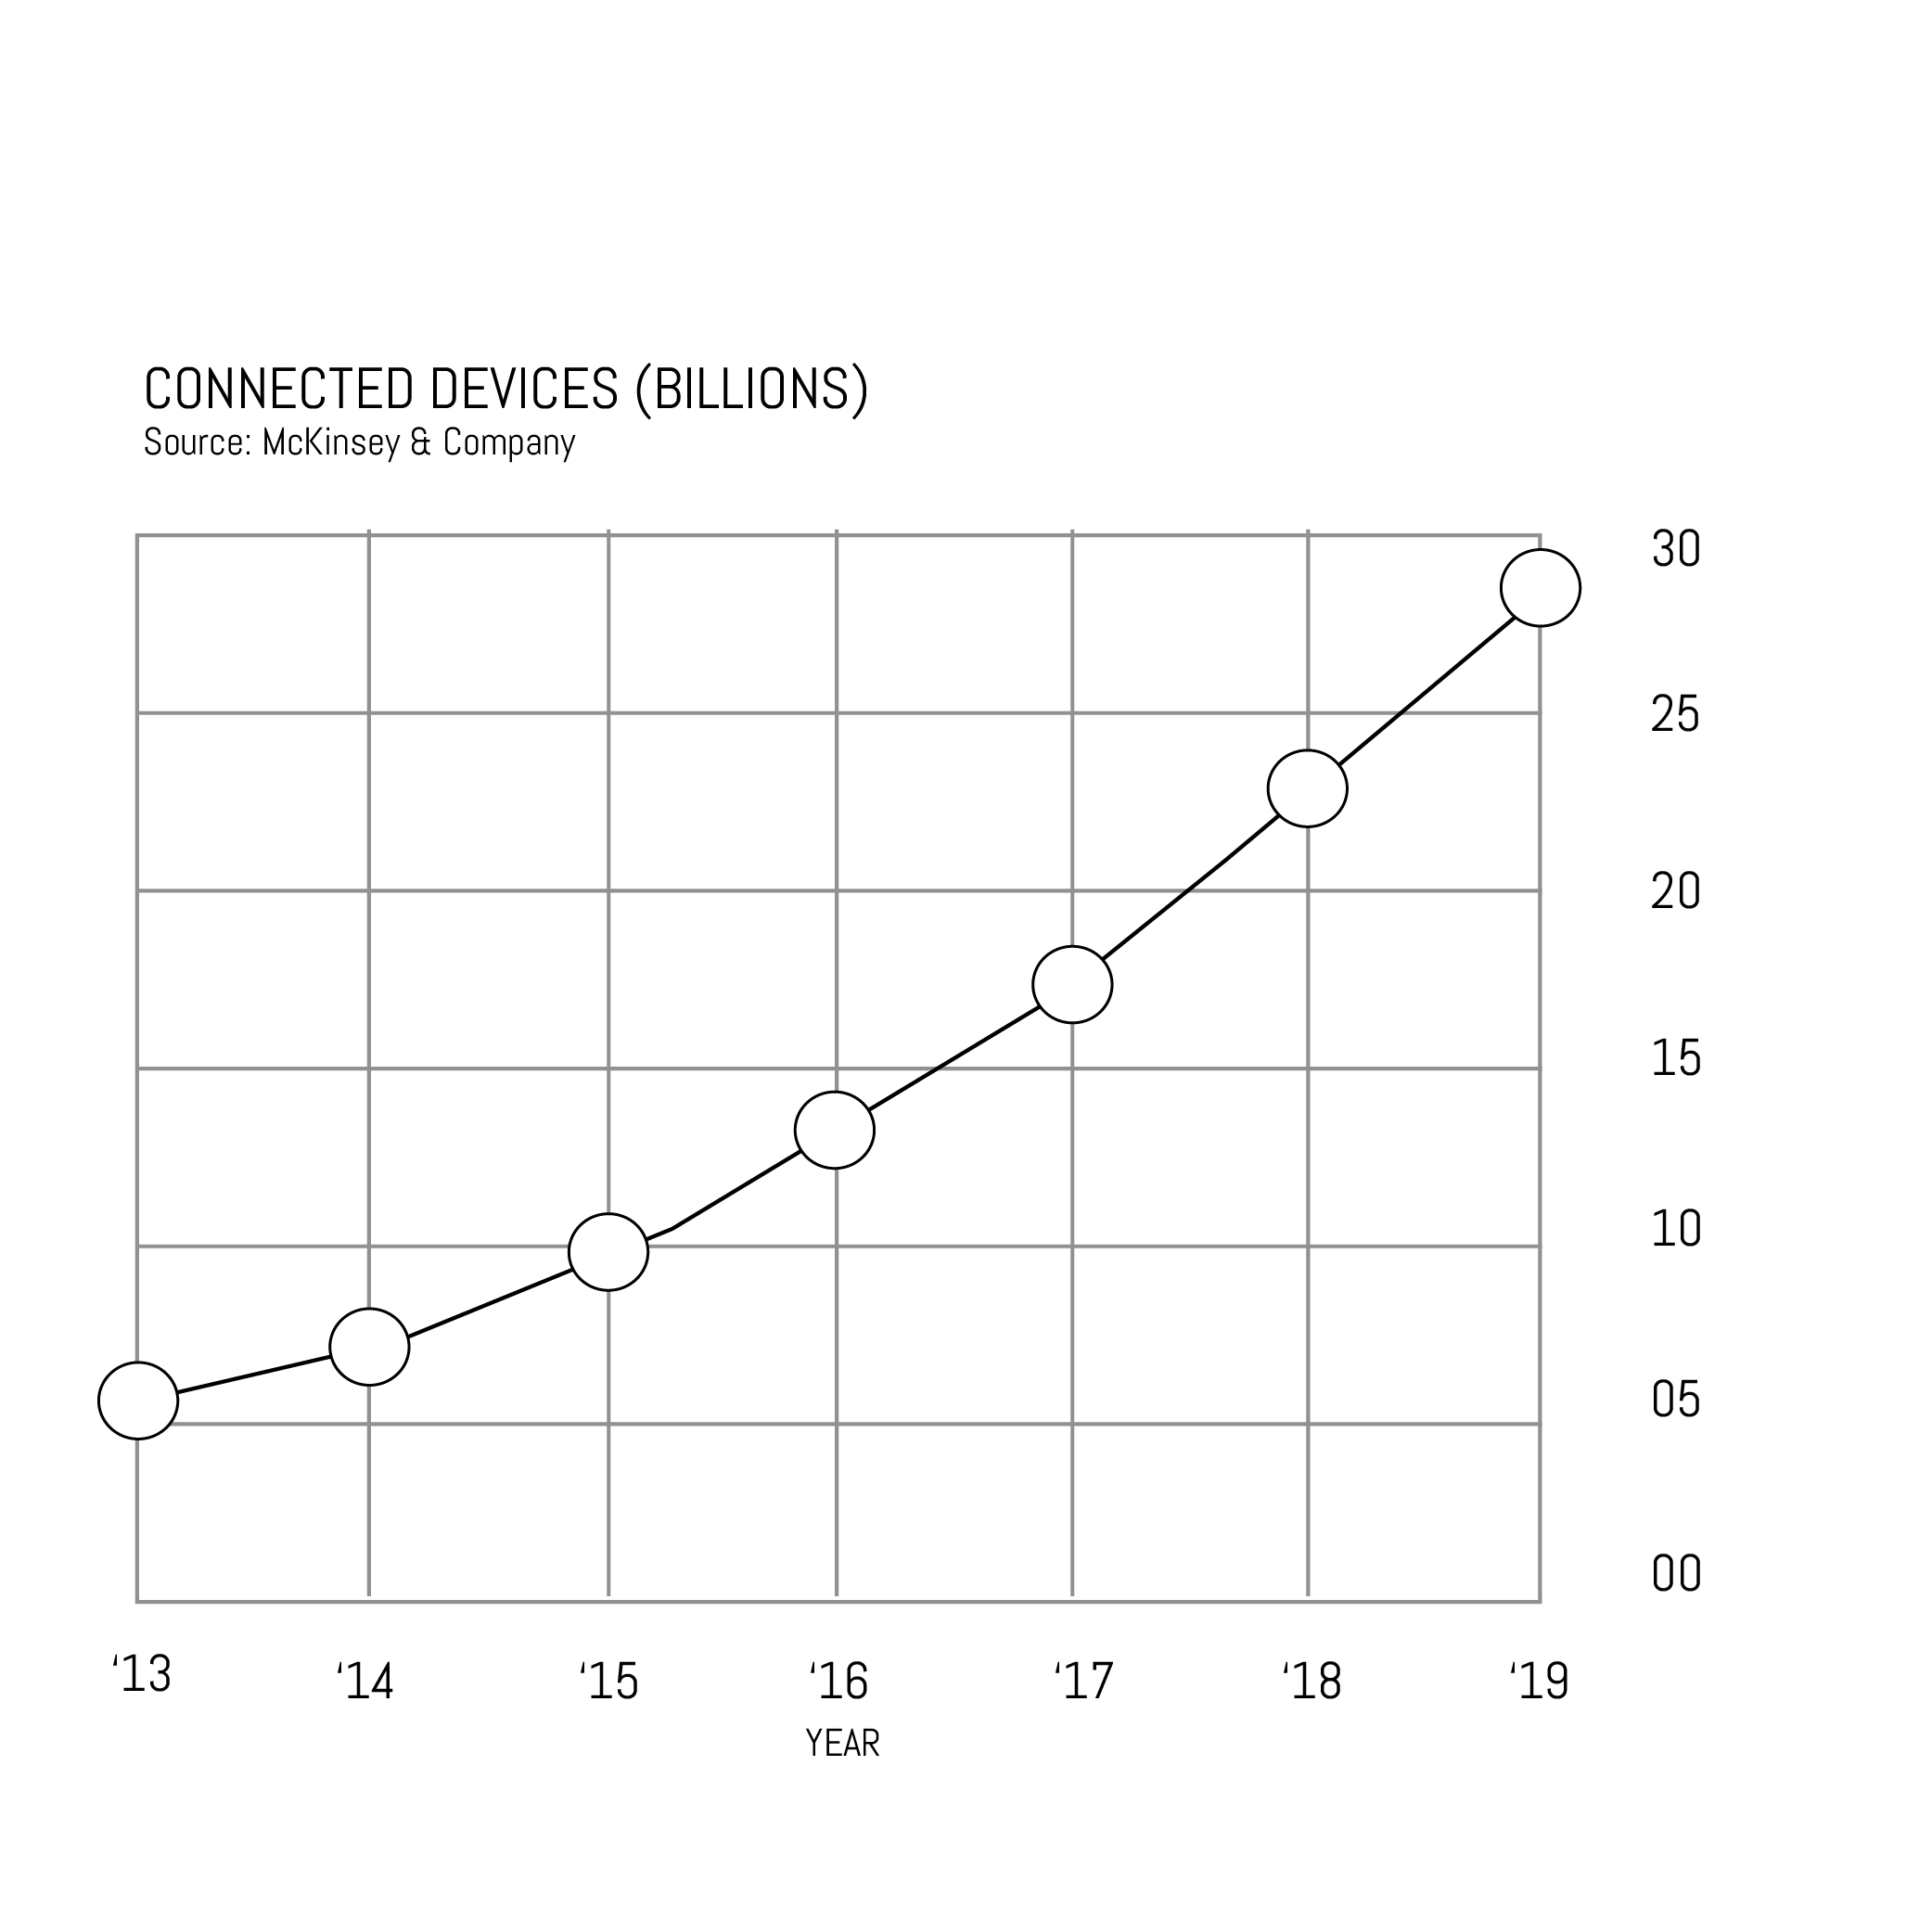 Figure 1. Growth in Connected Devices